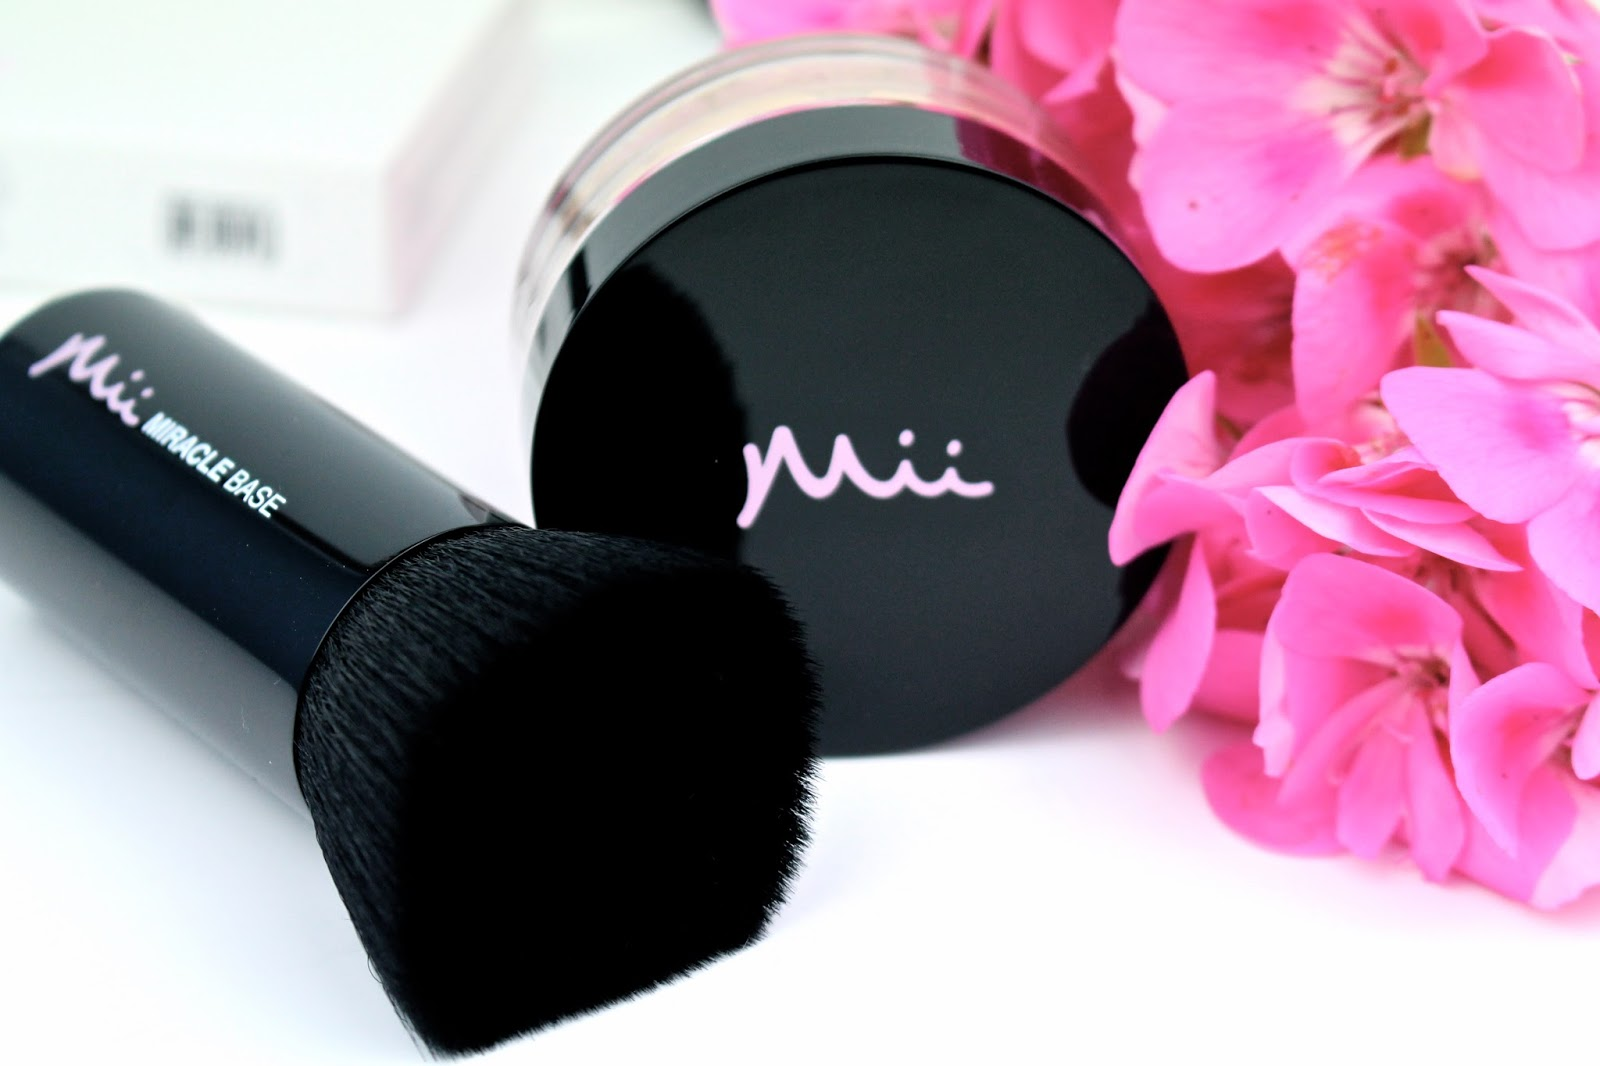 Miracle Base brush and foundation by Mii Cosmetics